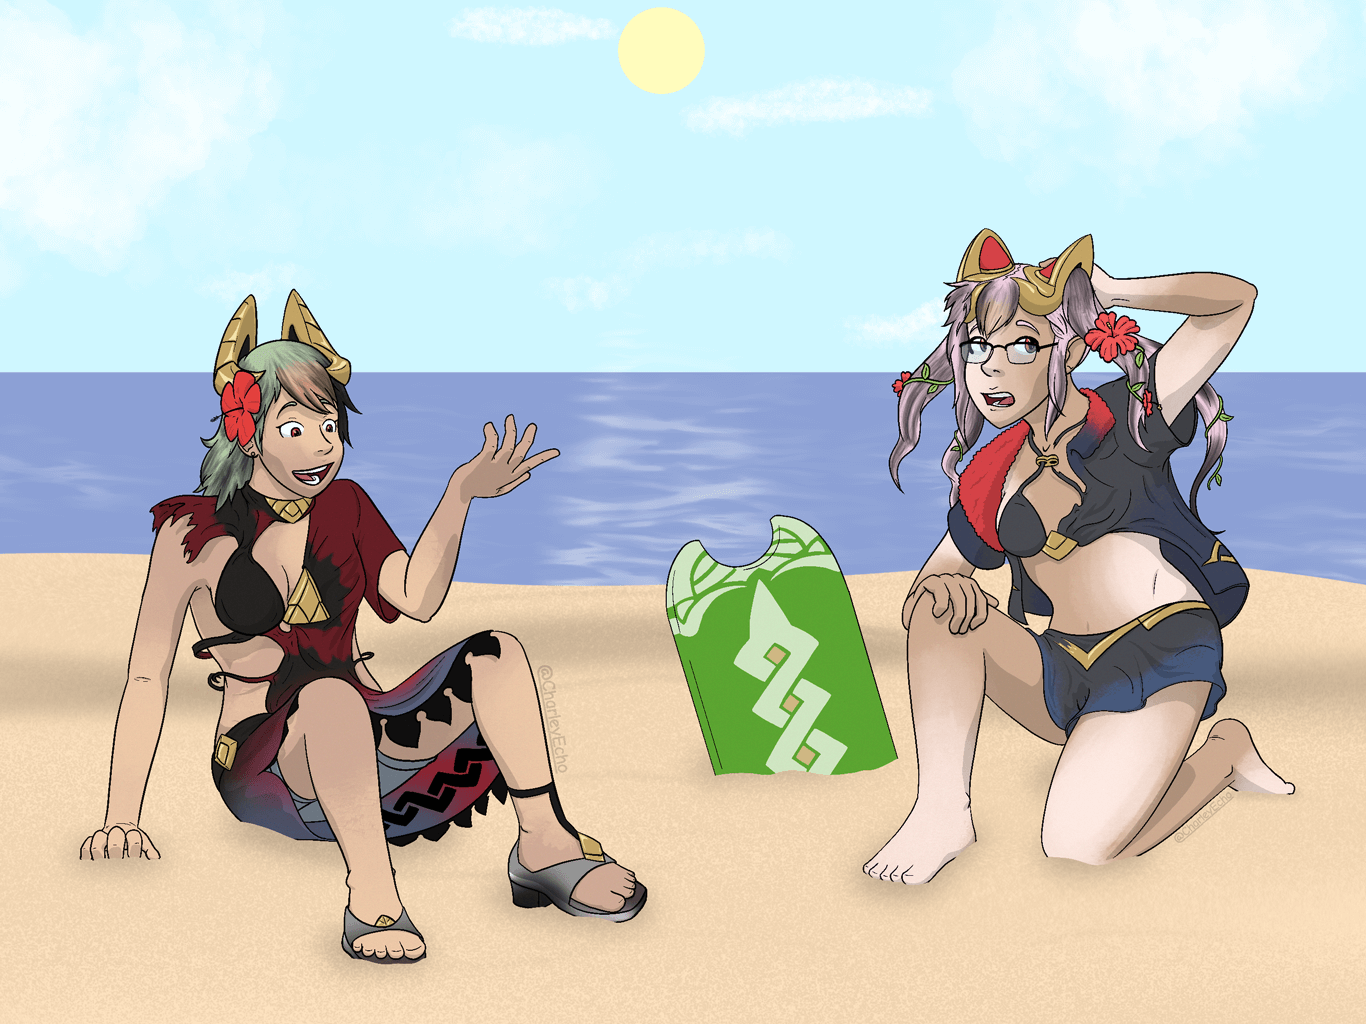 [C] Urban and Kaiza Have a Beach Day!